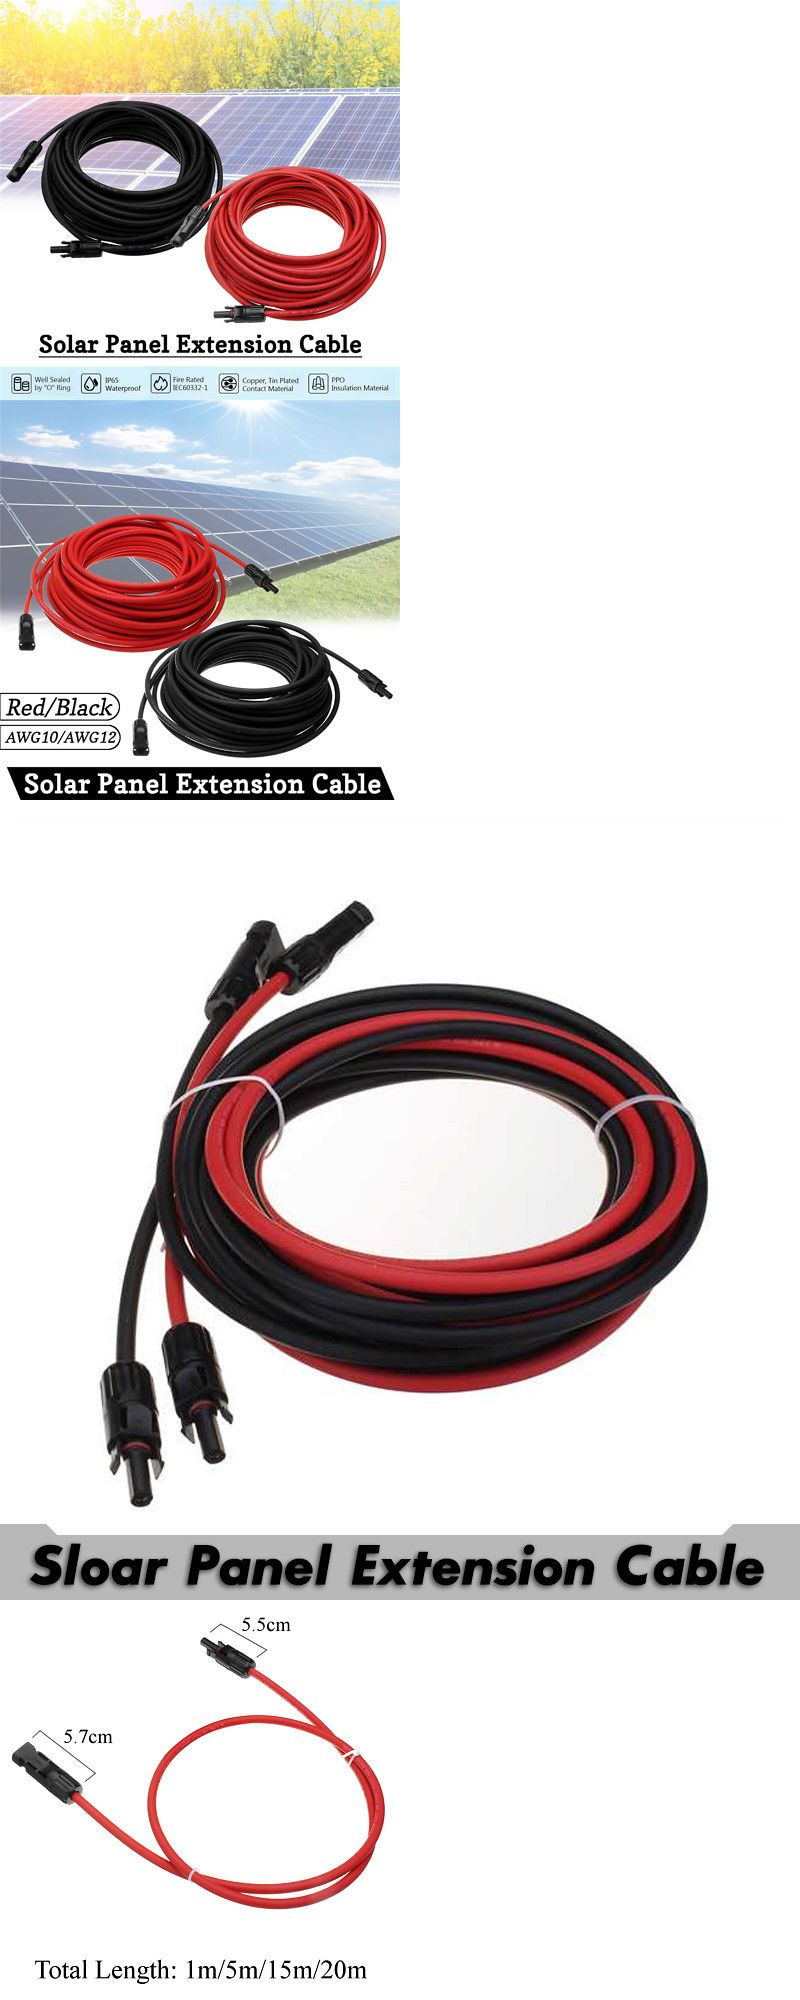 Connectors And Ties 41982 1 Pair 10 12awg Solar Panel Extension Cord Mc4 Connection Cable Line Connector Buy It Now Onl Extension Cord Connector Connectors